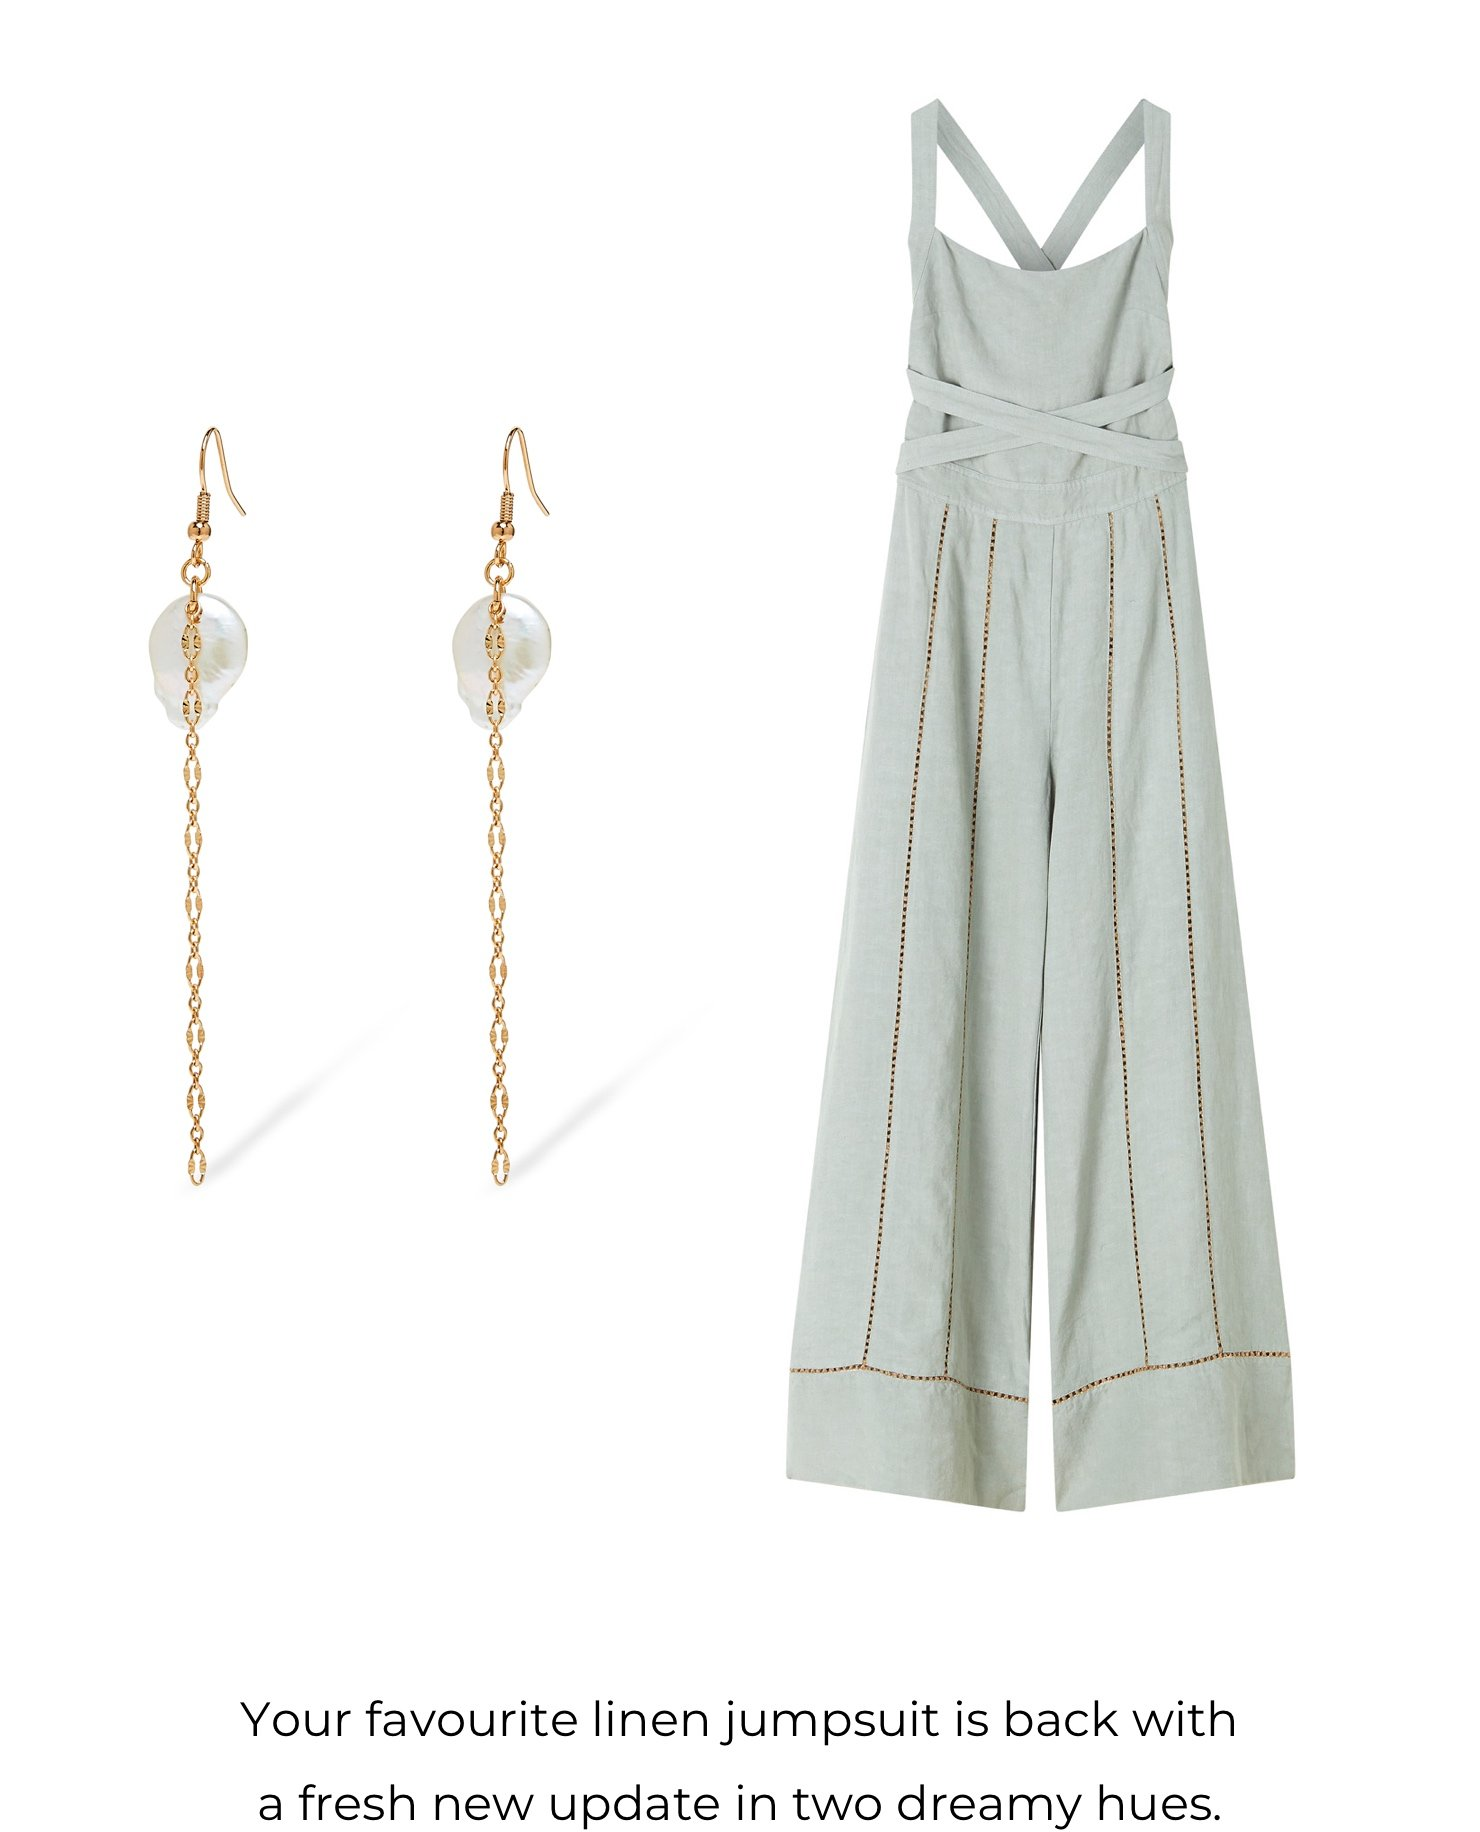 Your favourite linen jumpsuit is back with a fresh new update in two dreamy hues.